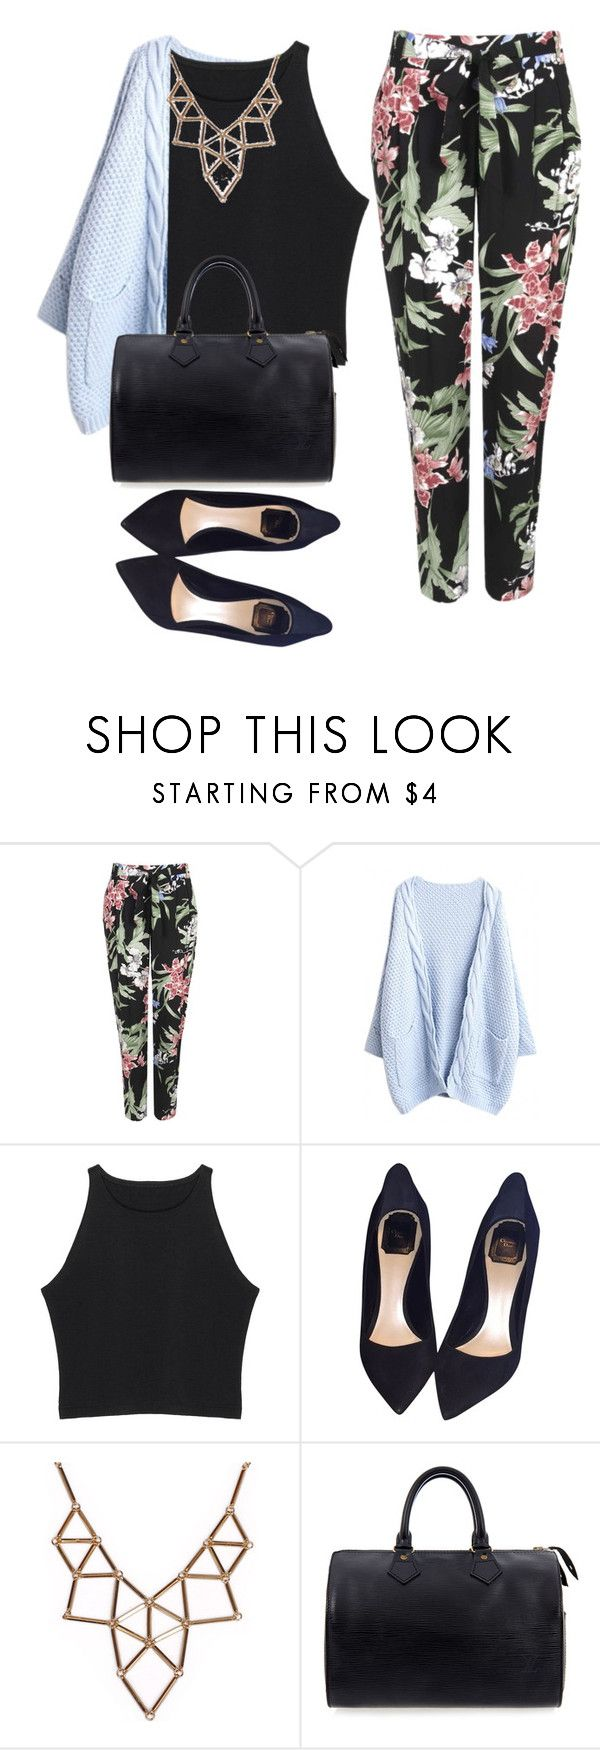 """Untitled #1269"" by littledeath11 ❤ liked on Polyvore featuring Wallis, Christian Dior, Chicnova Fashion and Louis Vuitton"